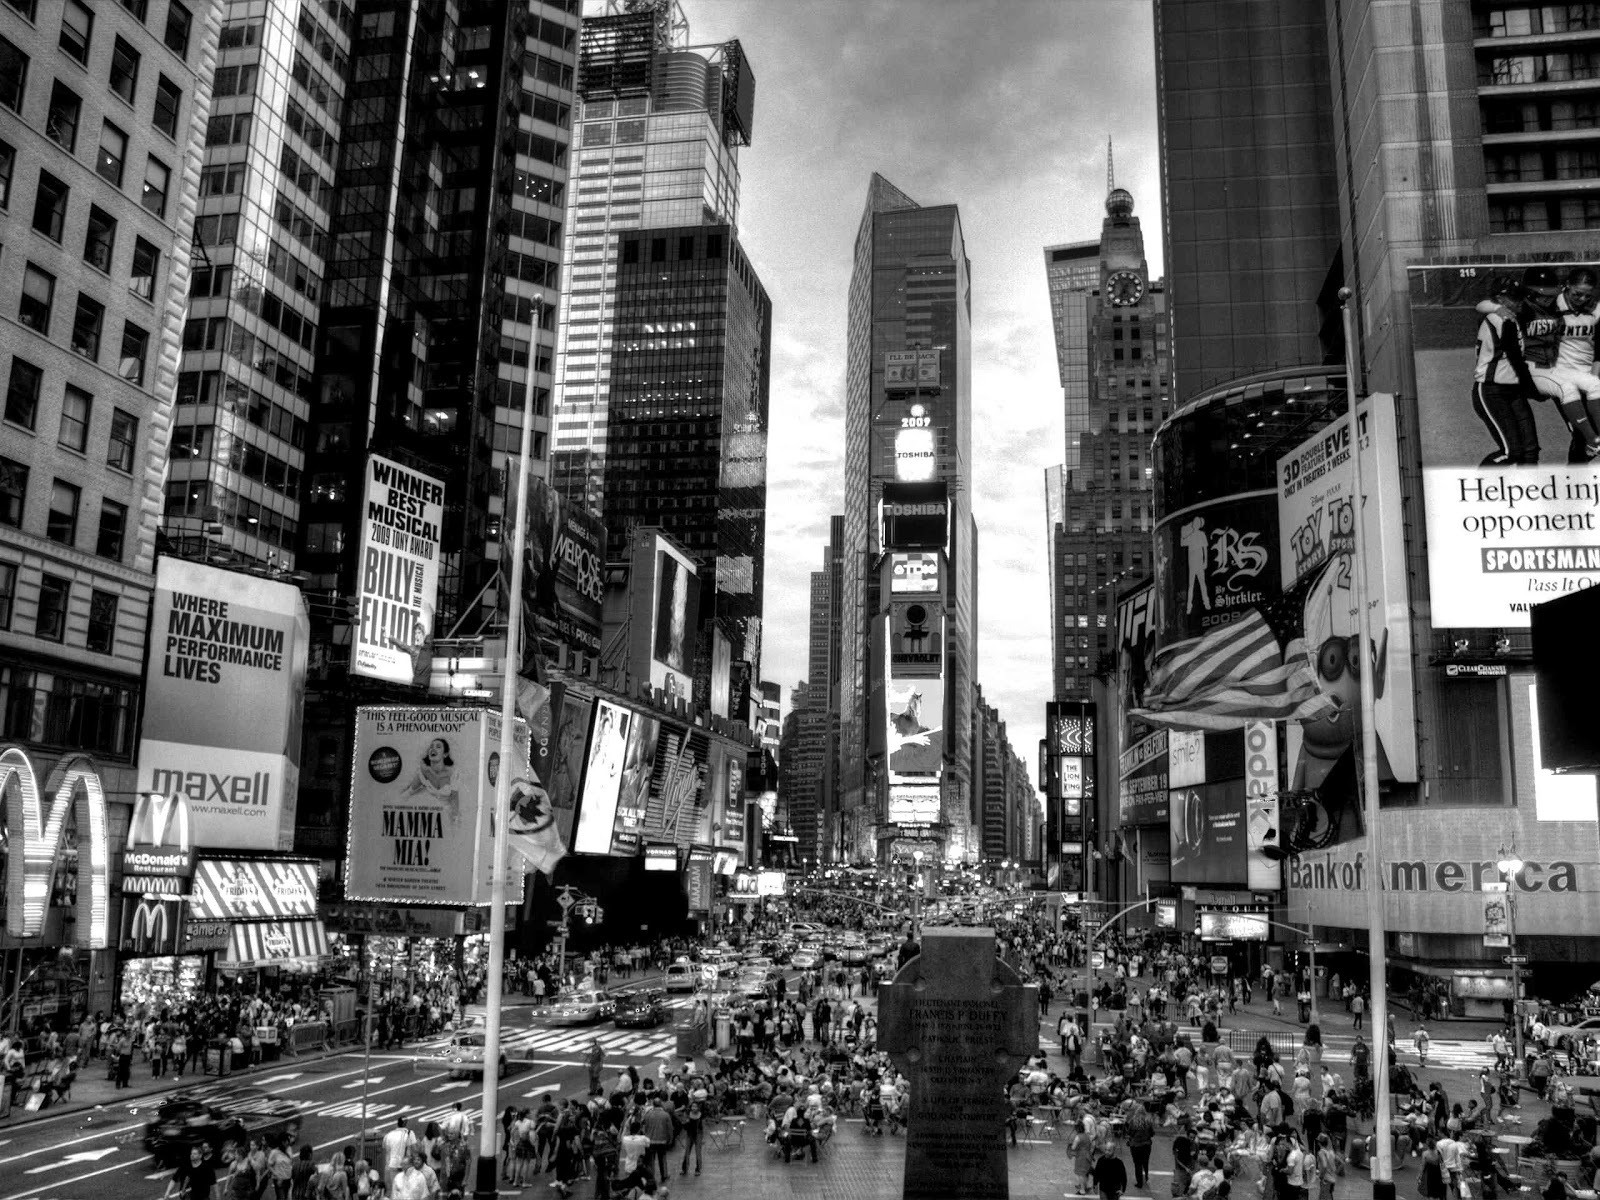 Download Wallpaper Night Black And White - new-york-city-wallpaper-black-and-white-15  HD.jpg